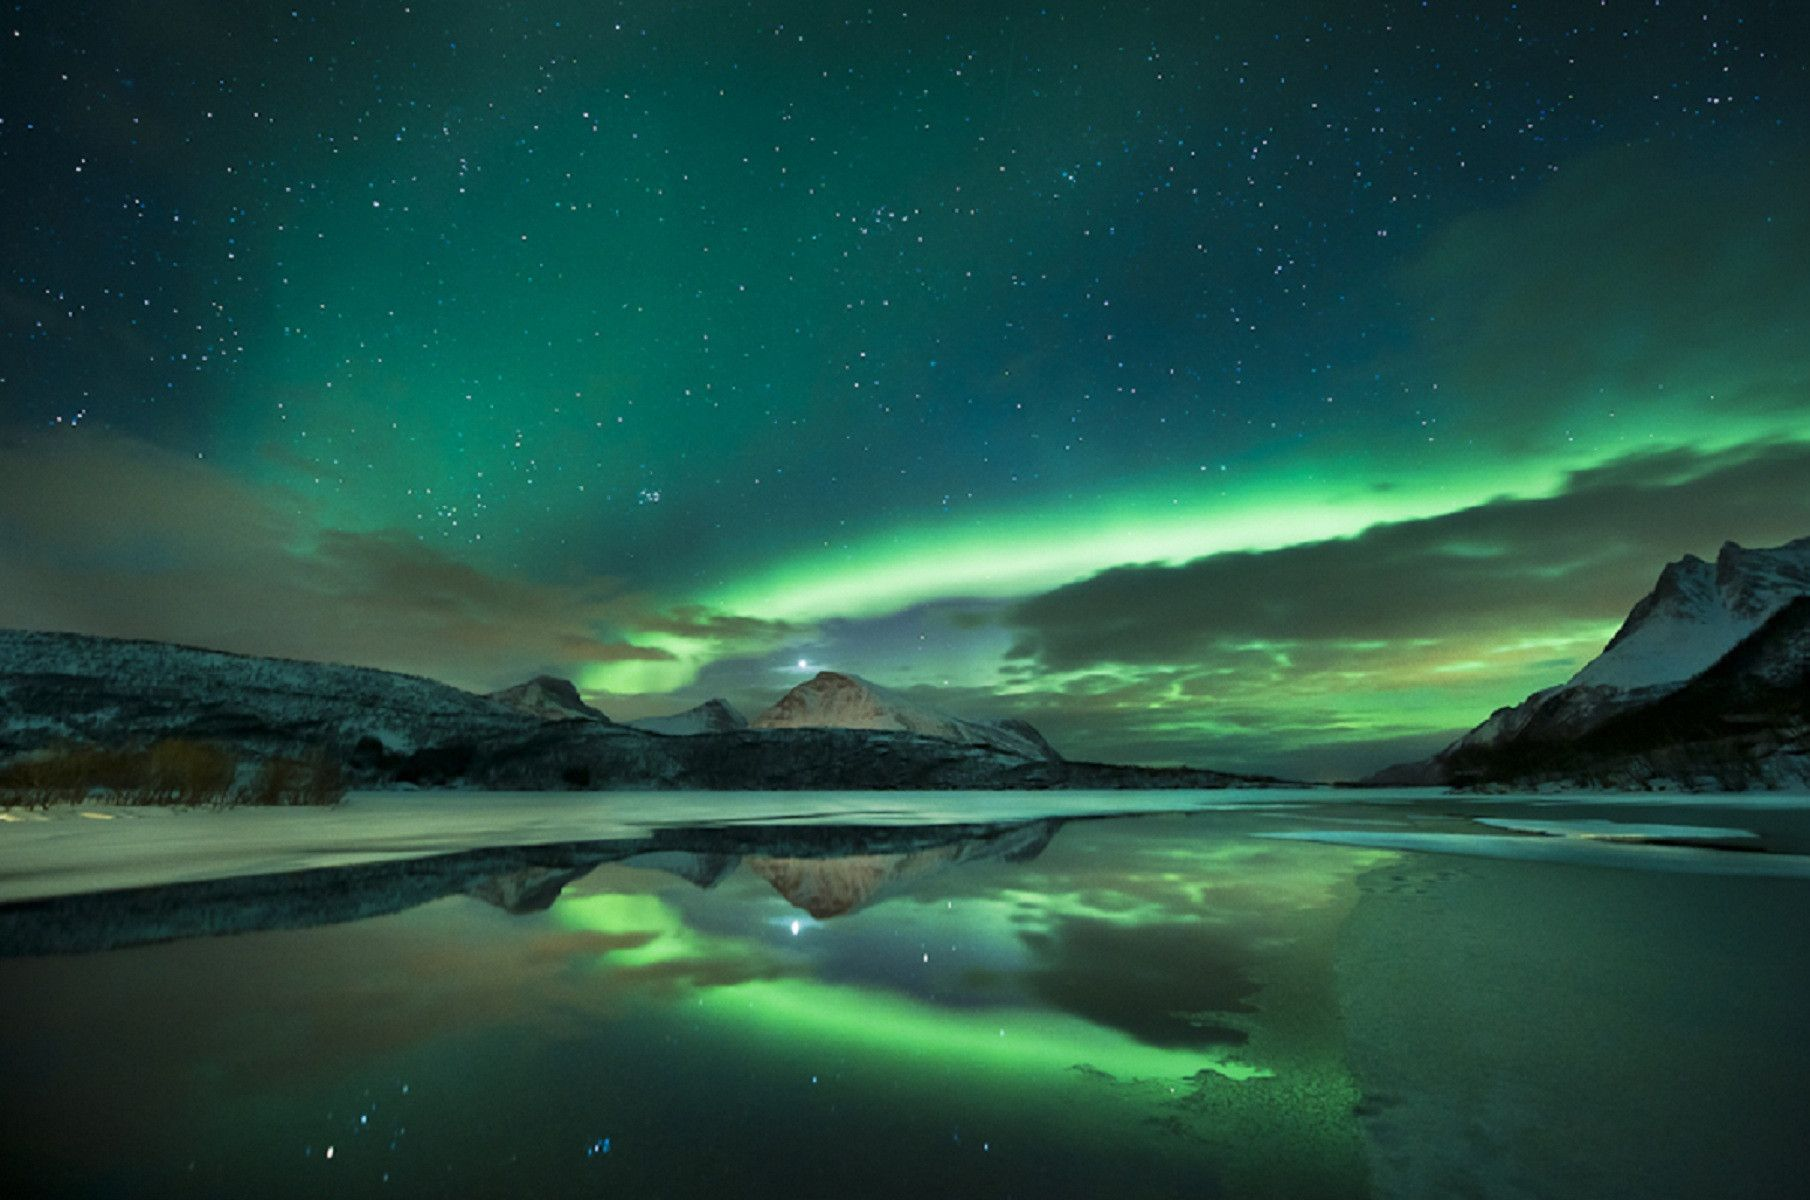 Aurora Borealis Mo I Rana Norway Northern Lights Northern Lights Wallpaper Sky Pictures